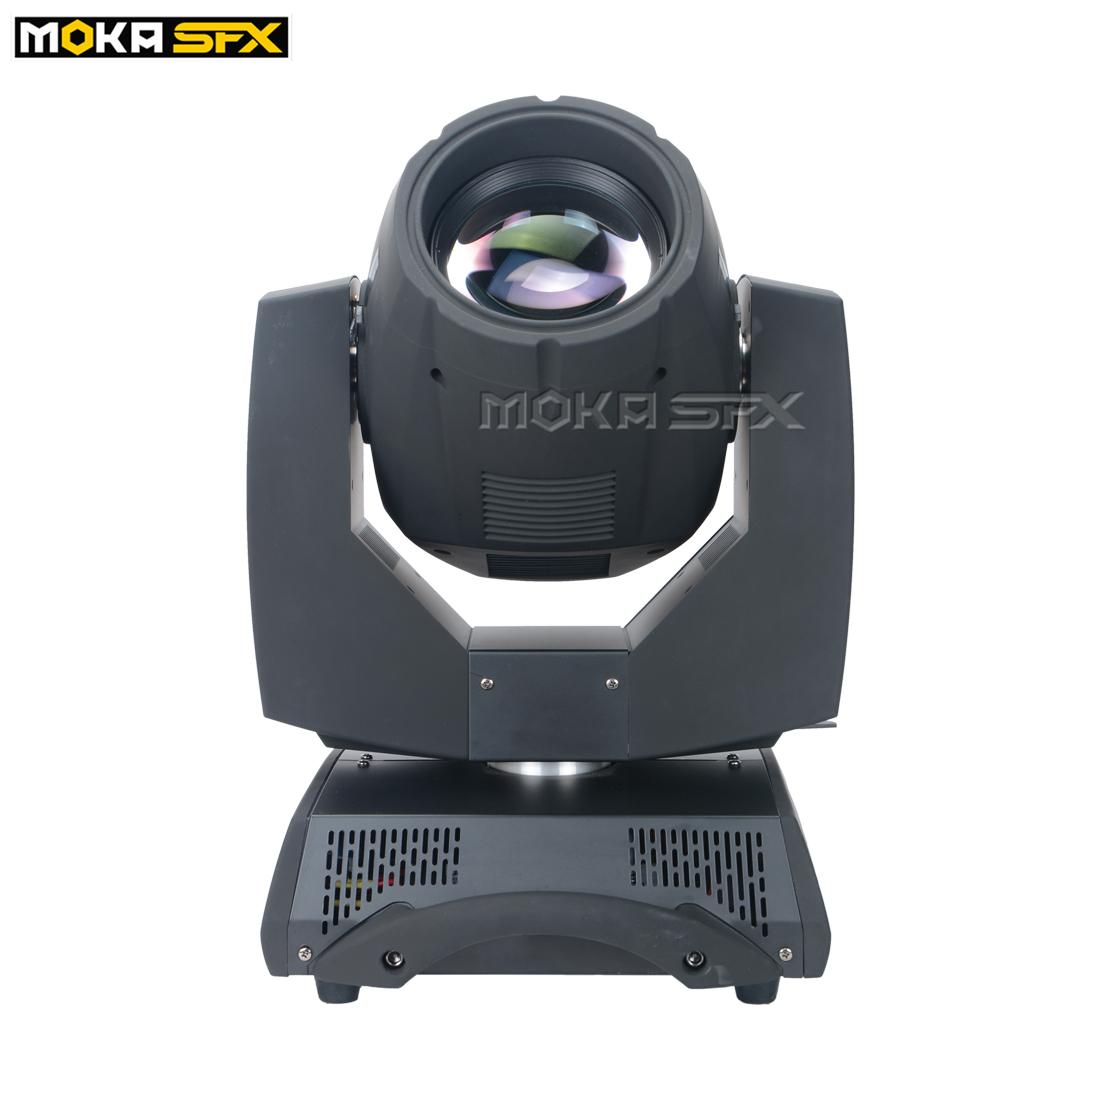 Attivo Auto Led Fascio 230 Moving Head per Sharpy 7r Luce Concerto con Flight Case